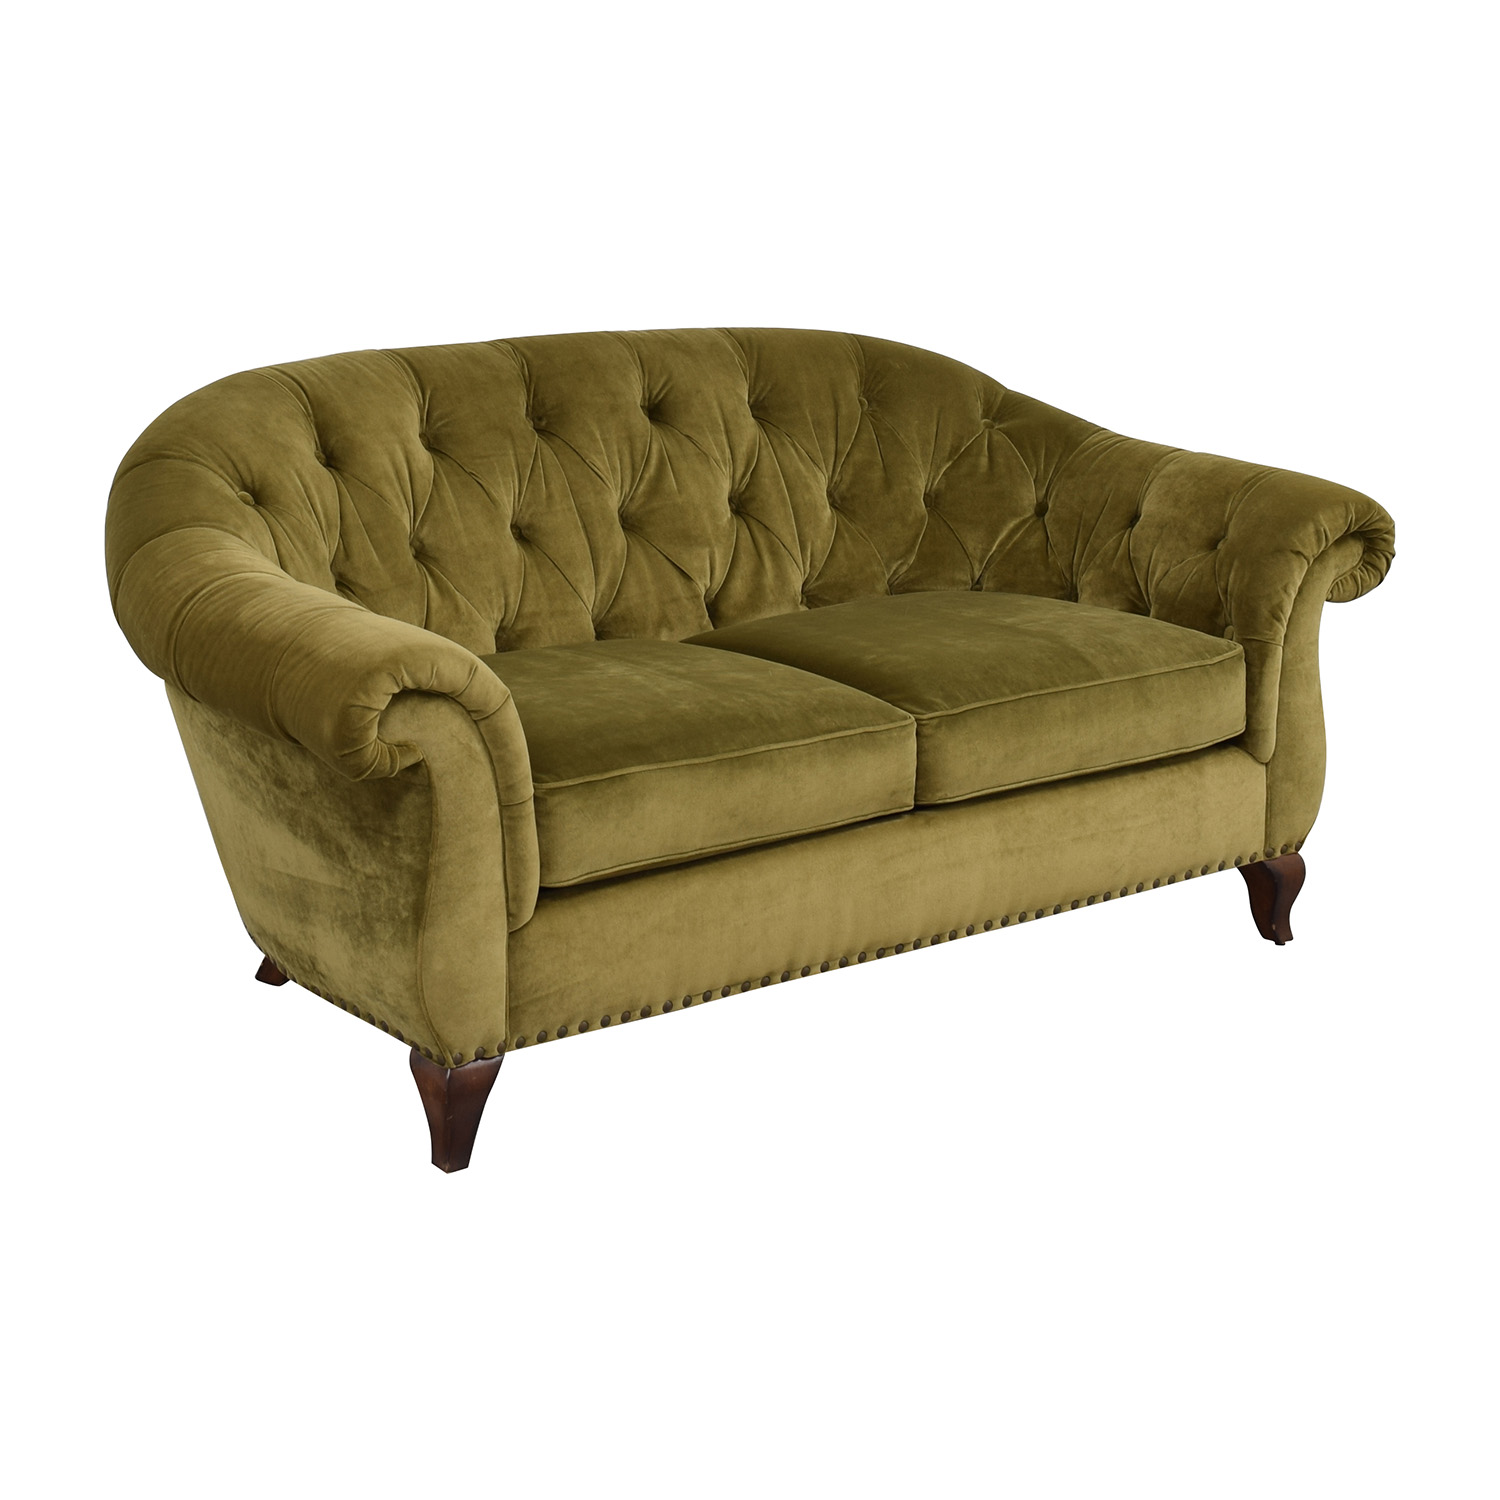 Marvelous ... Buy Ralph Lauren Ralph Lauren Green Velvet Loveseat Online ...